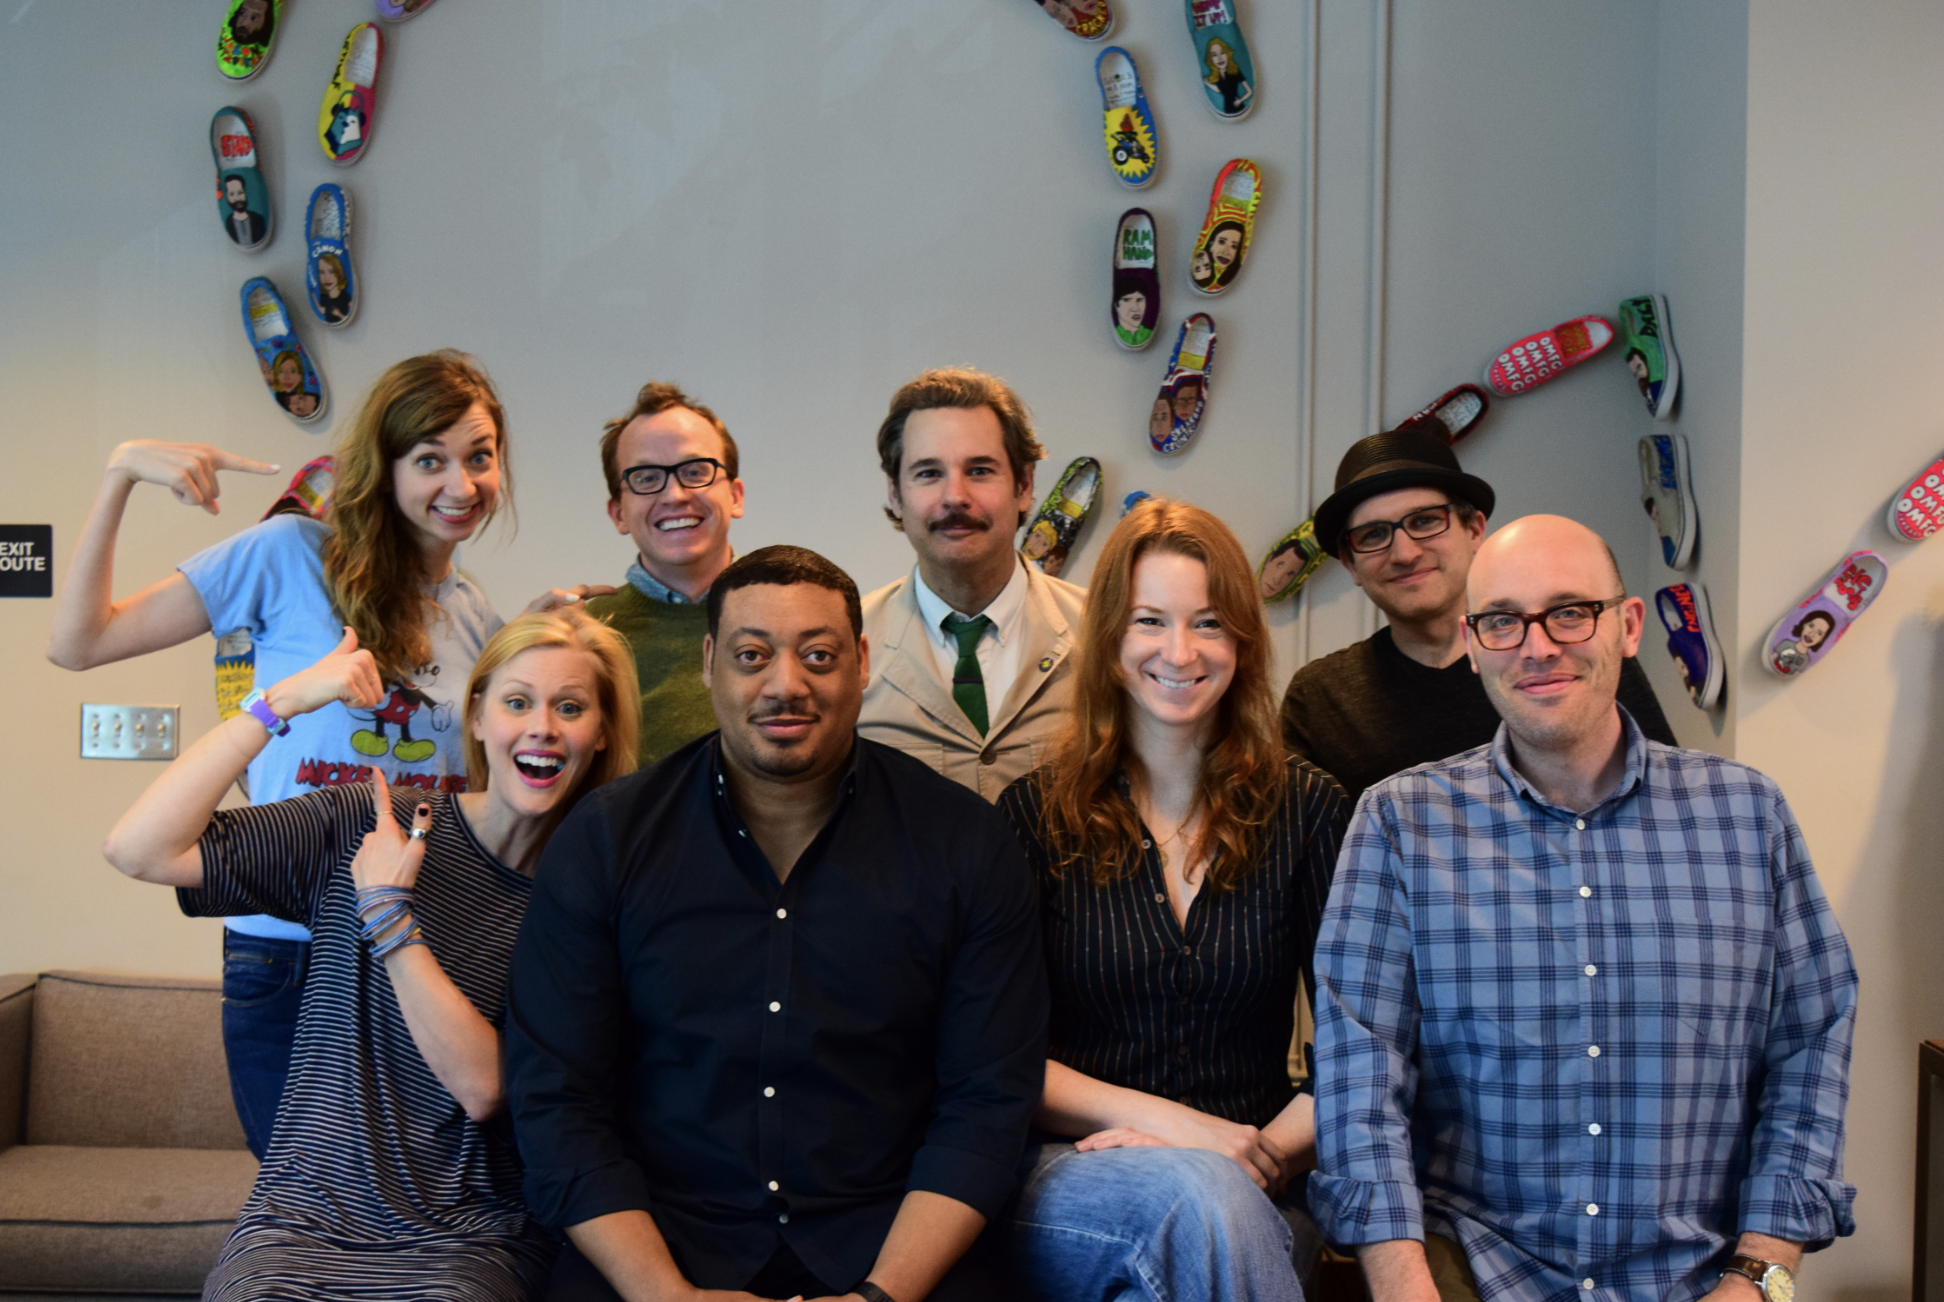 "Spontaneanation with Paul F. Tompkins#69 Minnesota State Fair(July 18th, 2016) - Paul F. Tompkins welcomes all with his impressive vocal range to this week's episode of Spontaneanation! This week, Paul's special guest is Cedric Yarbrough of Reno 911! and HBO's Ballers! They chat about how Cedric pronounces ""data,"" getting into a fist fight as an adult, and unusual nicknames for relatives. Paul is then joined by Mark McConville, Colleen Smith, and Little Janet Varney to improvise a story set at the Minnesota State Fair. And as always, Eban (only the best) Schletter scores it all on piano!"